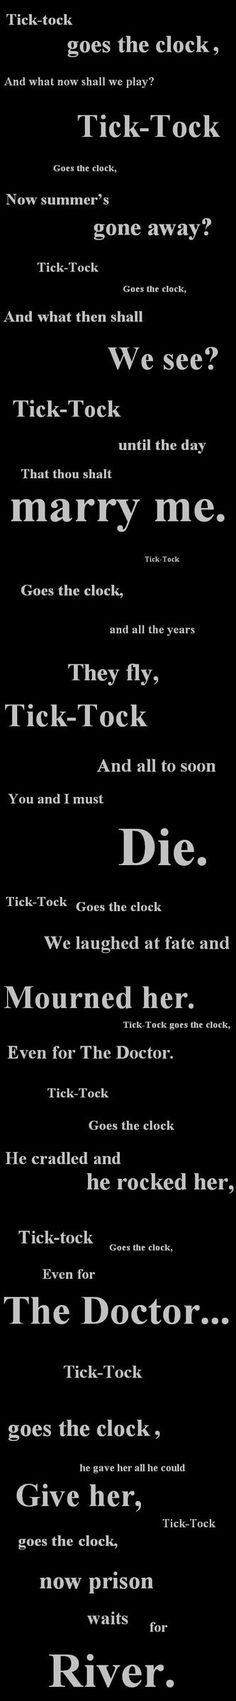 Tick-Tock. This is honestly the most haunting song to sing, even if you don't watch the show.